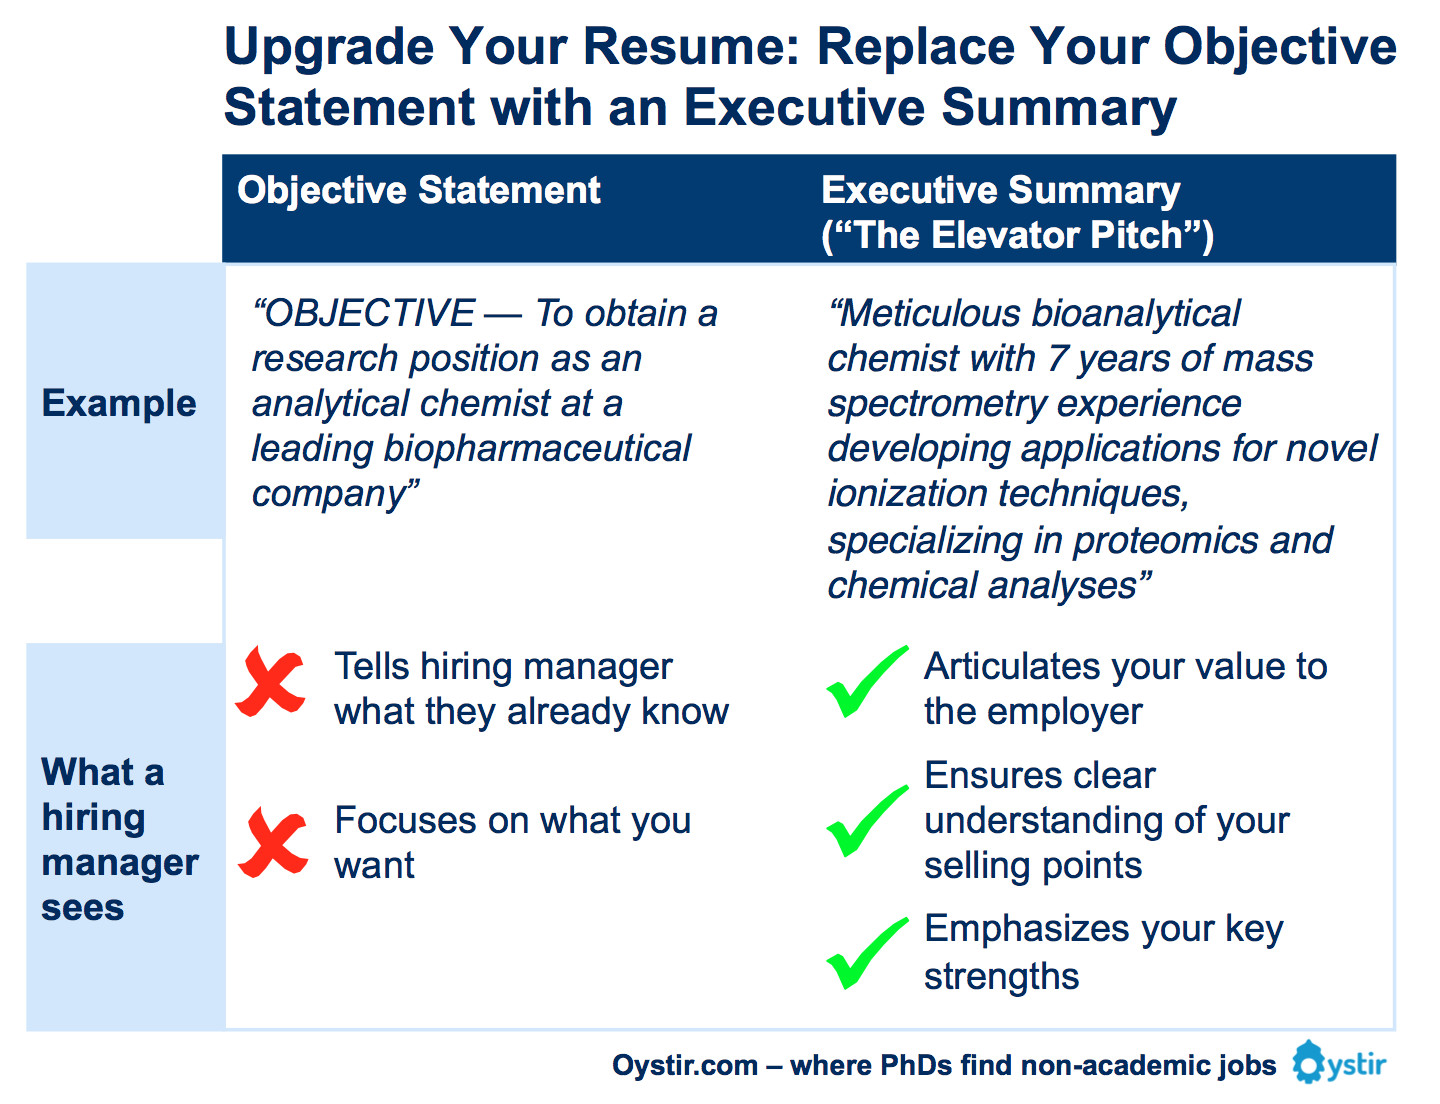 the major problem with objective statements is they tell hiring managers what they already know if youre applying for a research scientist job - Resume Summary Statement Executive